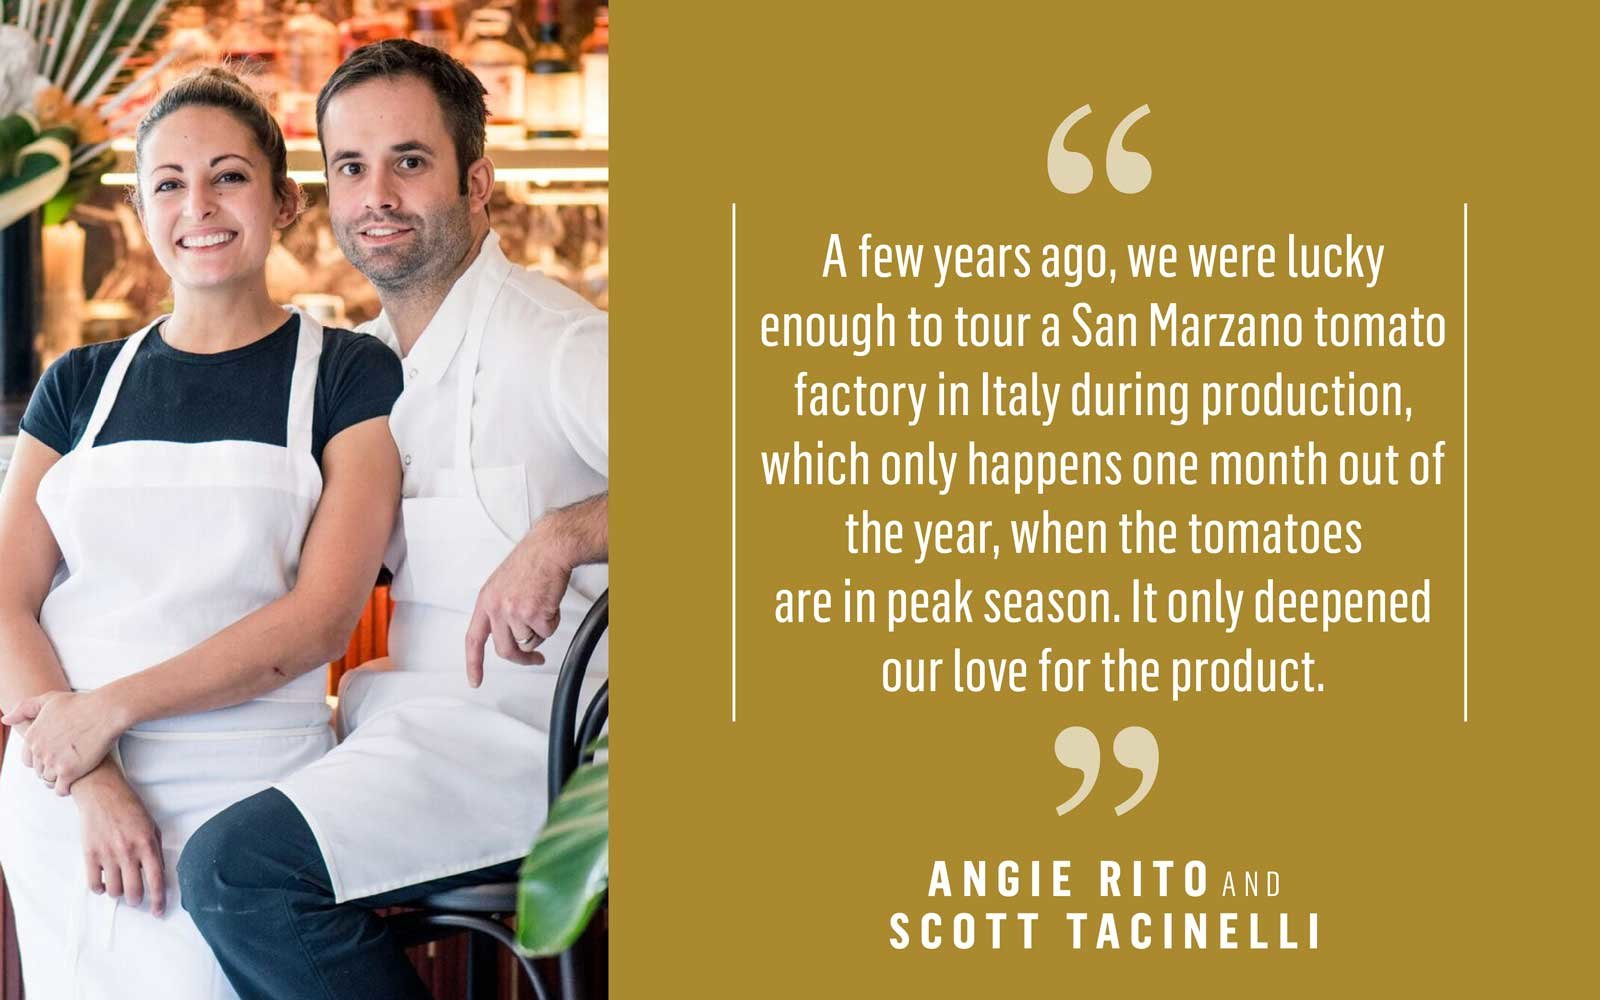 Chefs Angie Rito and Scott Tachinelli